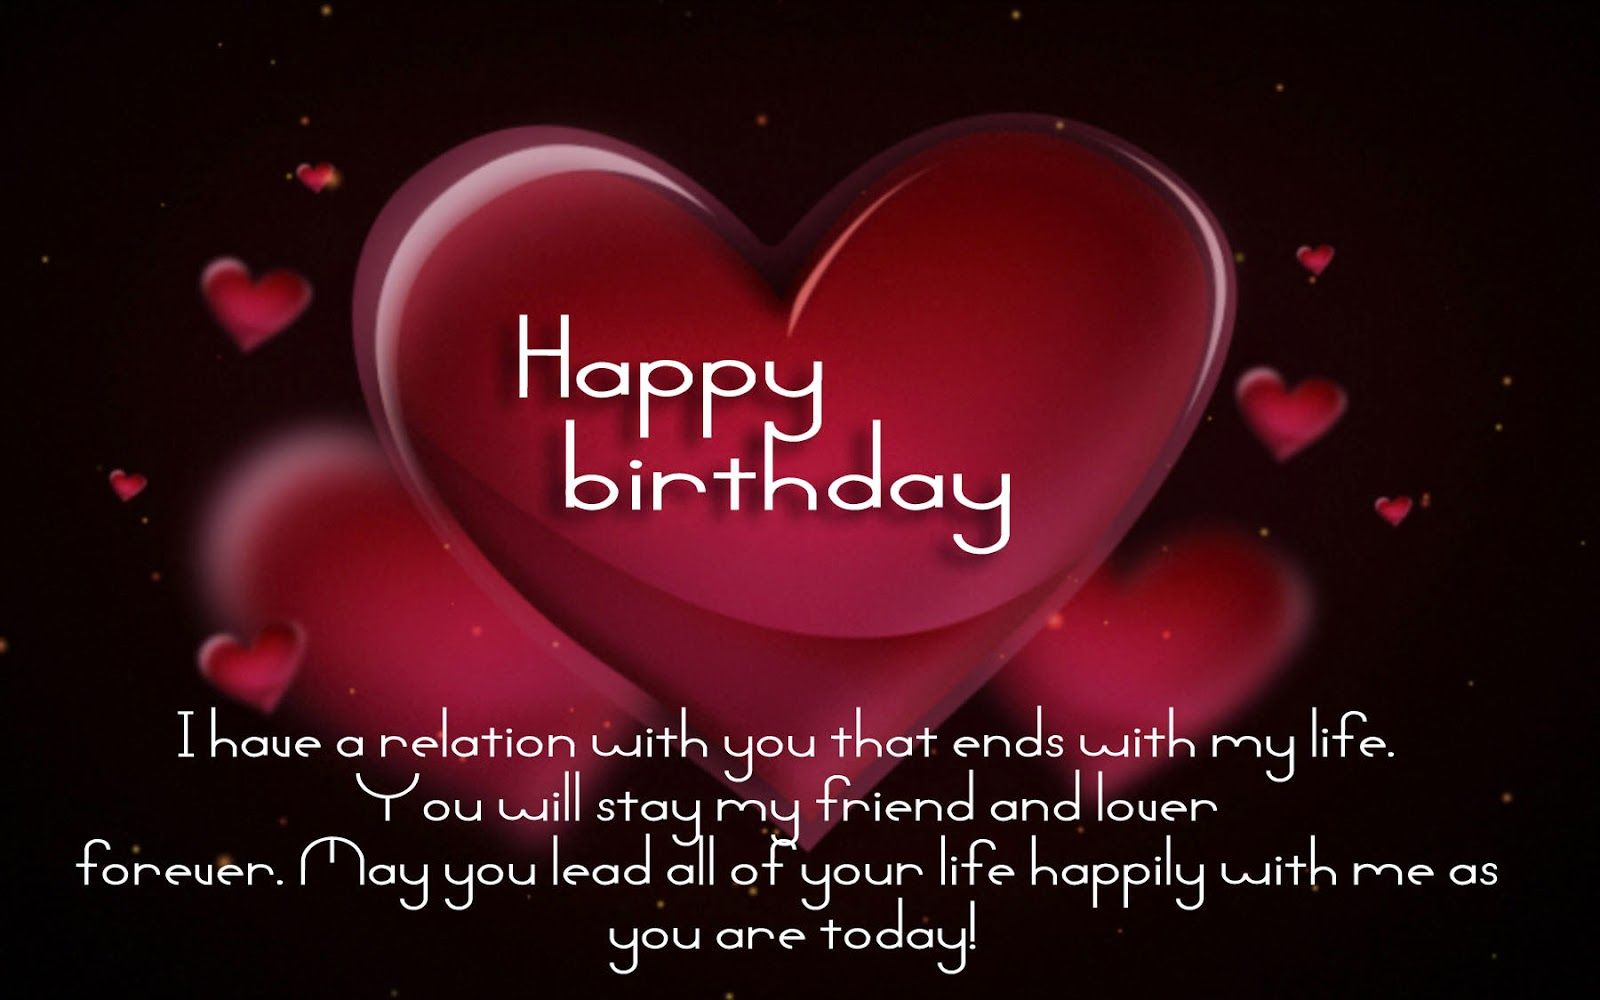 Happy Birthday Quotes For Boyfriend In Spanish: Happy Birthday Love Quotes, Images, Poems, Messages